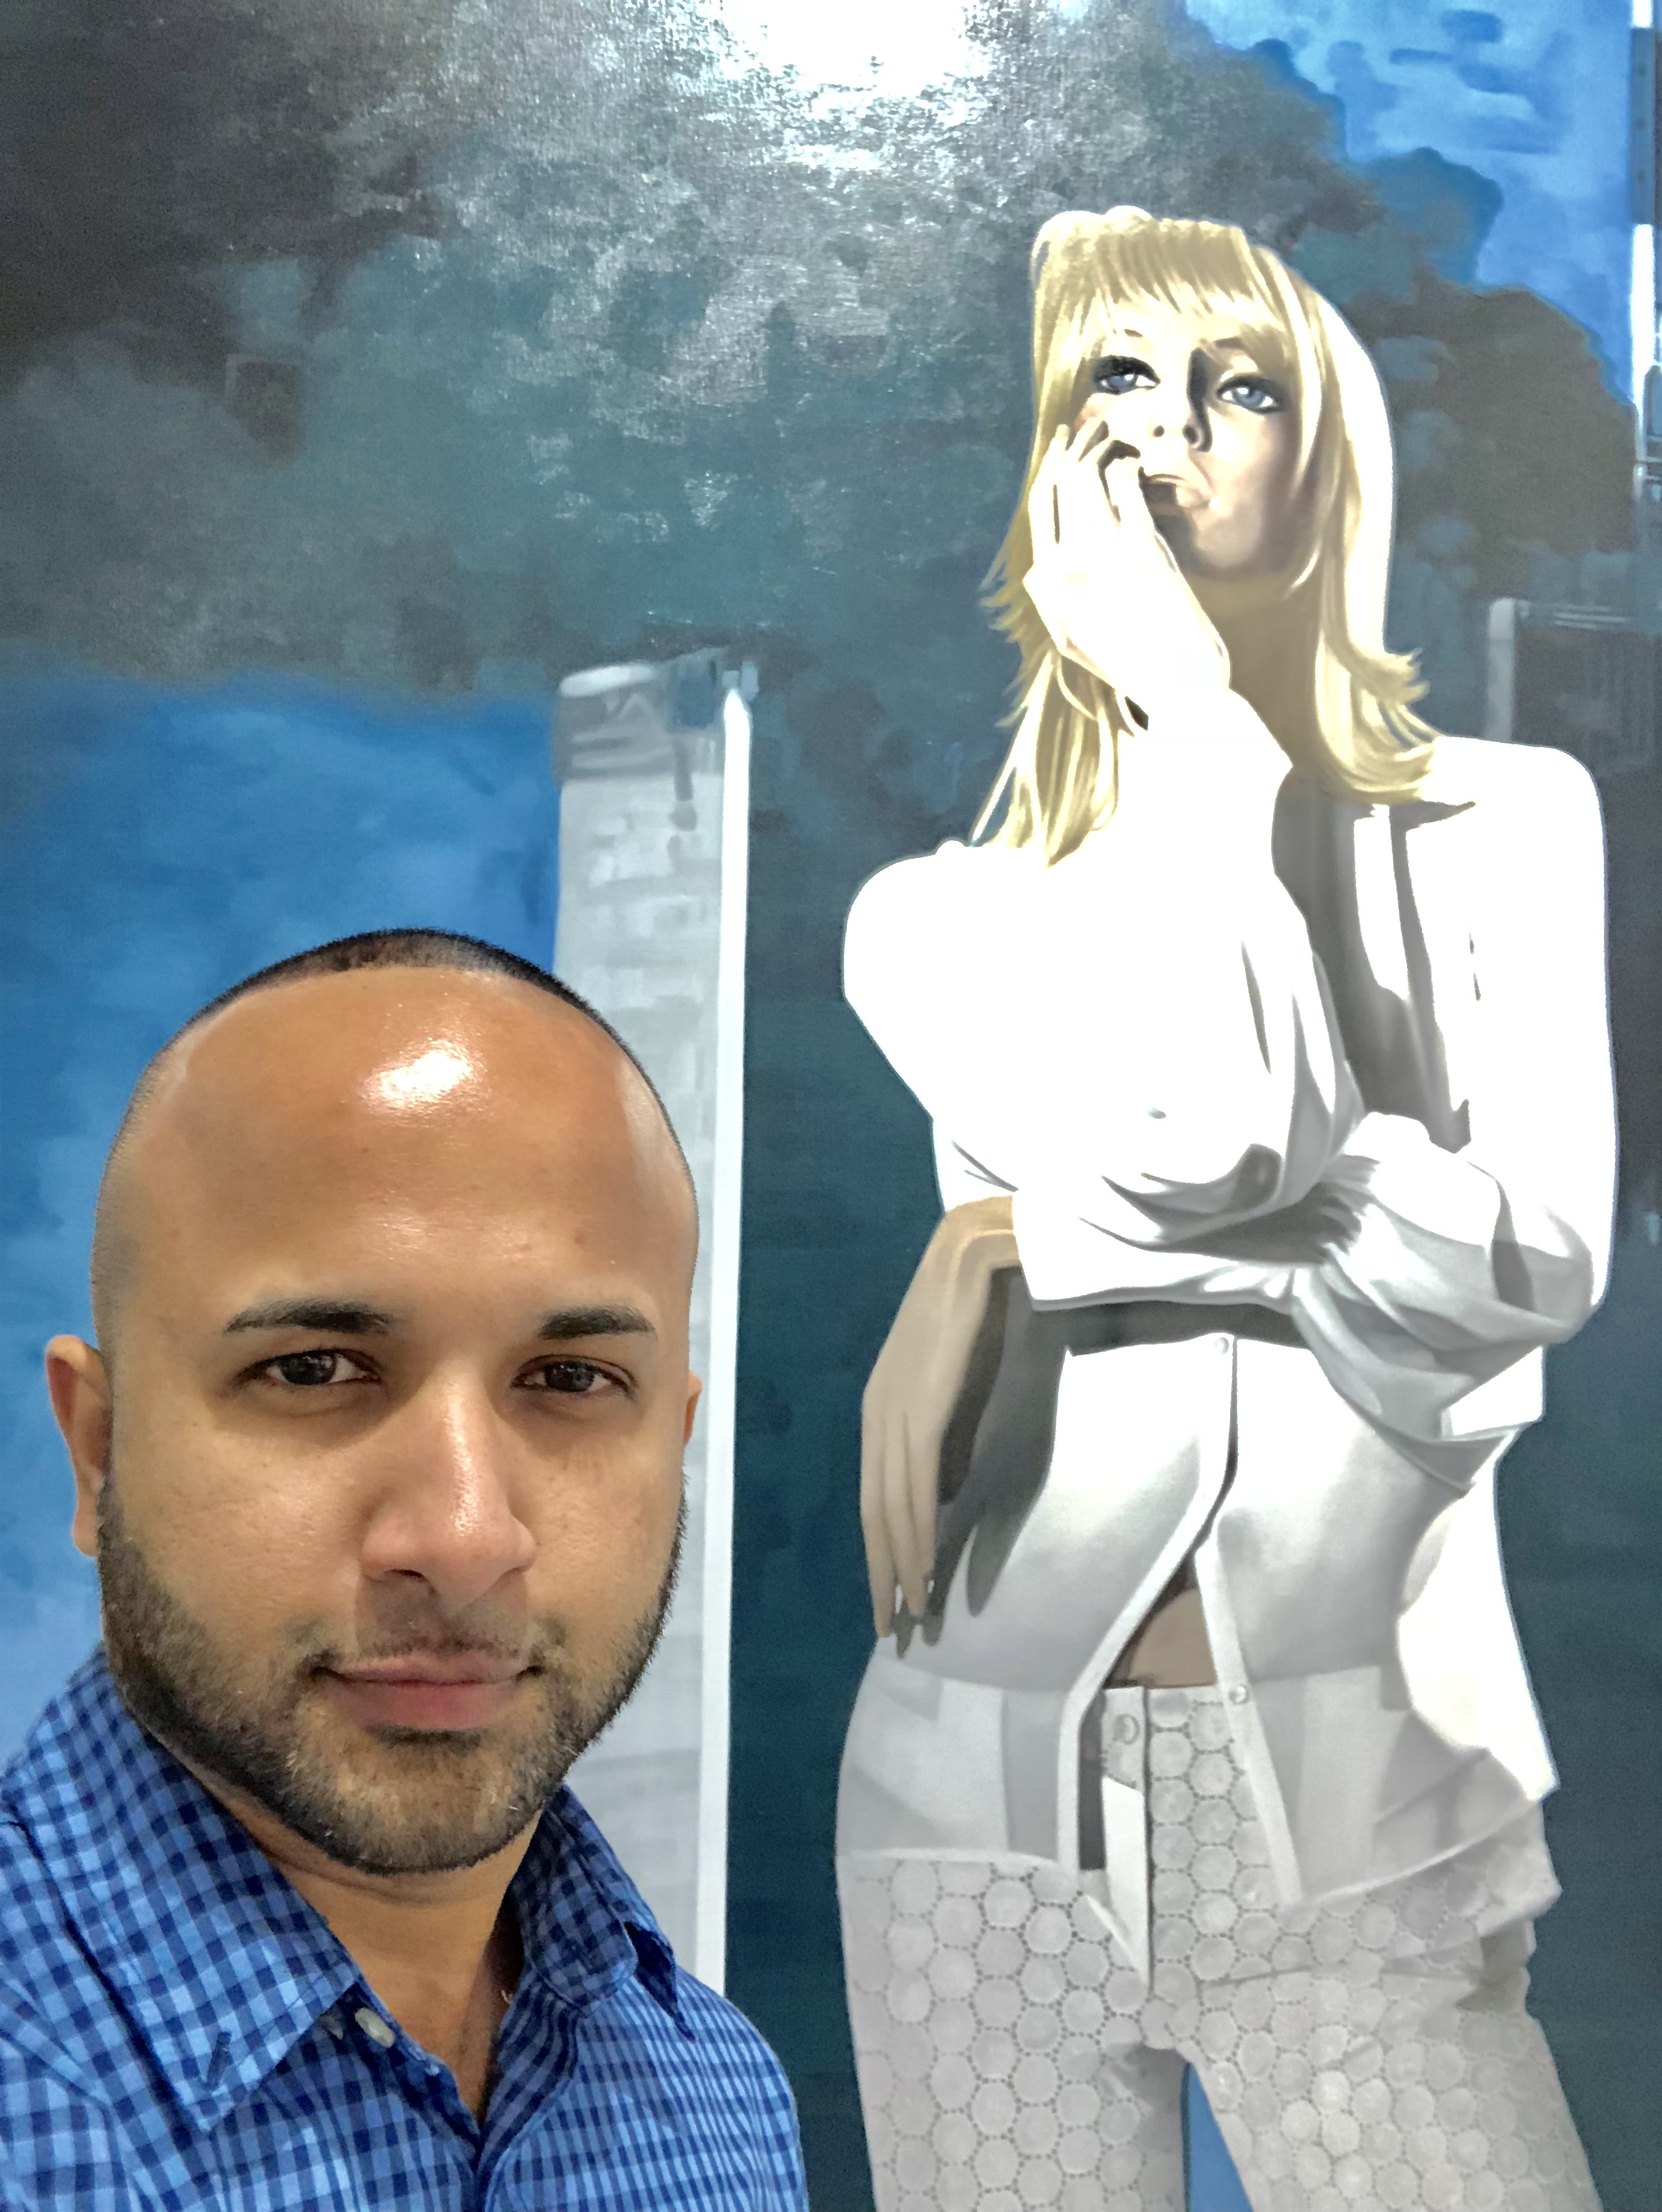 22 Terrence Narinesingh at Art Basel Miami 2017 John Grande New York, USA 911